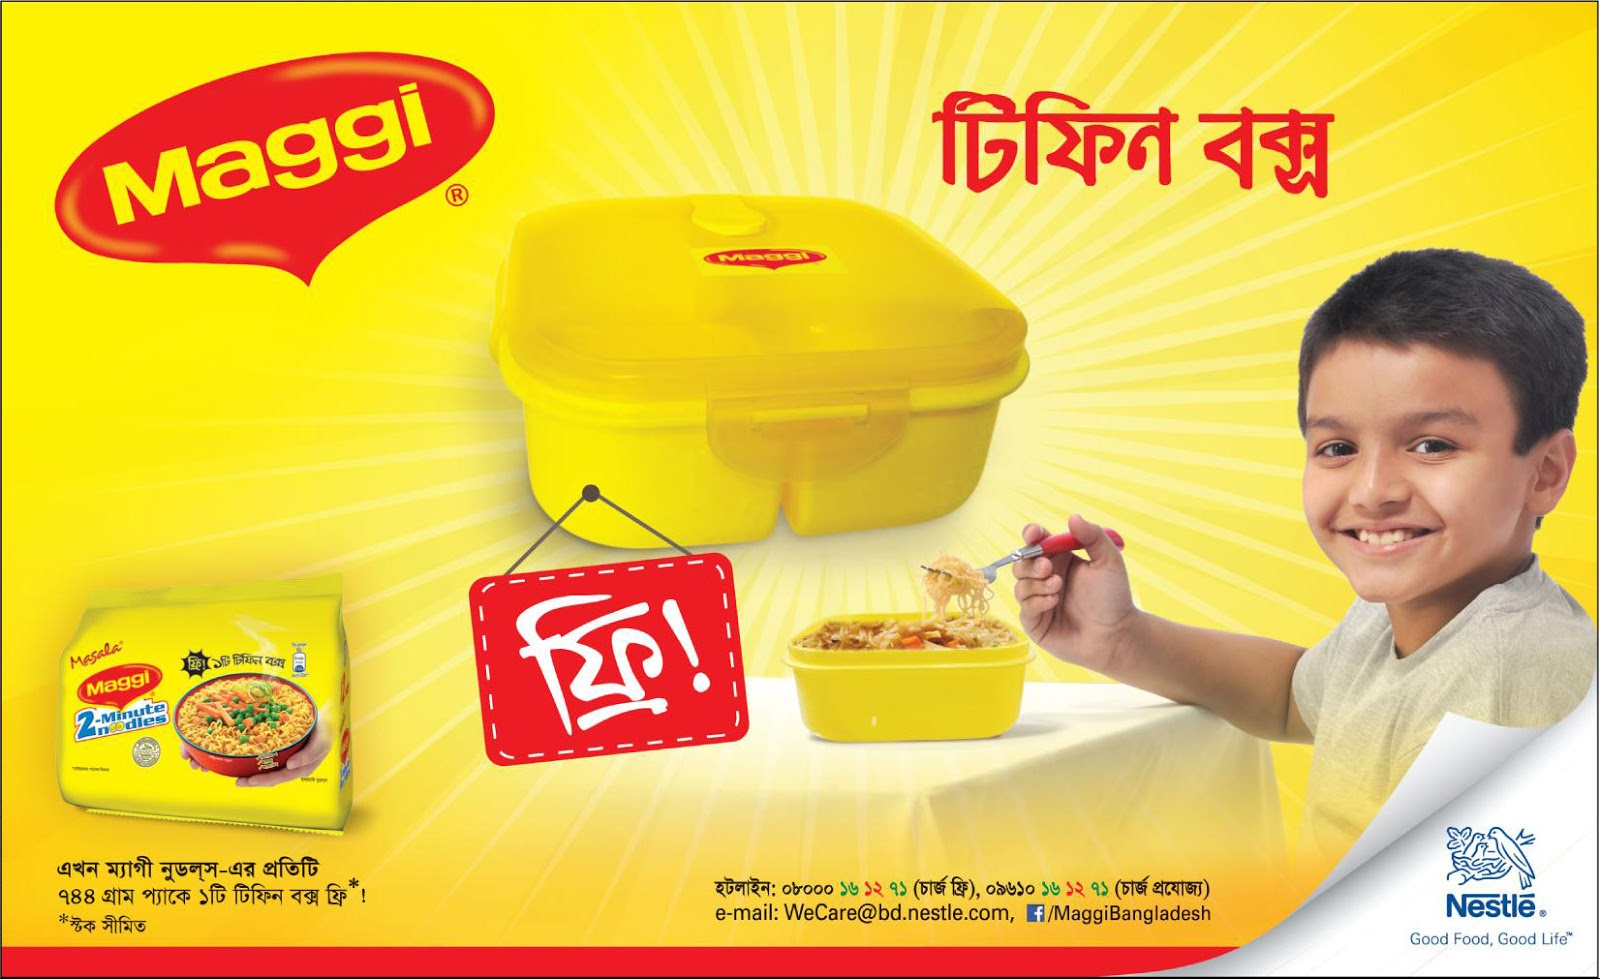 marketing research by maggi noodles New product launches, market expansion, partnerships, acquisitions are the preferred strategic approaches adopted by most companies involved in india instant noodles market some of the prominent players in the india instant noodles market include nestle sa, itc, cg foods india pvt ltd and capital foods pvt ltd.